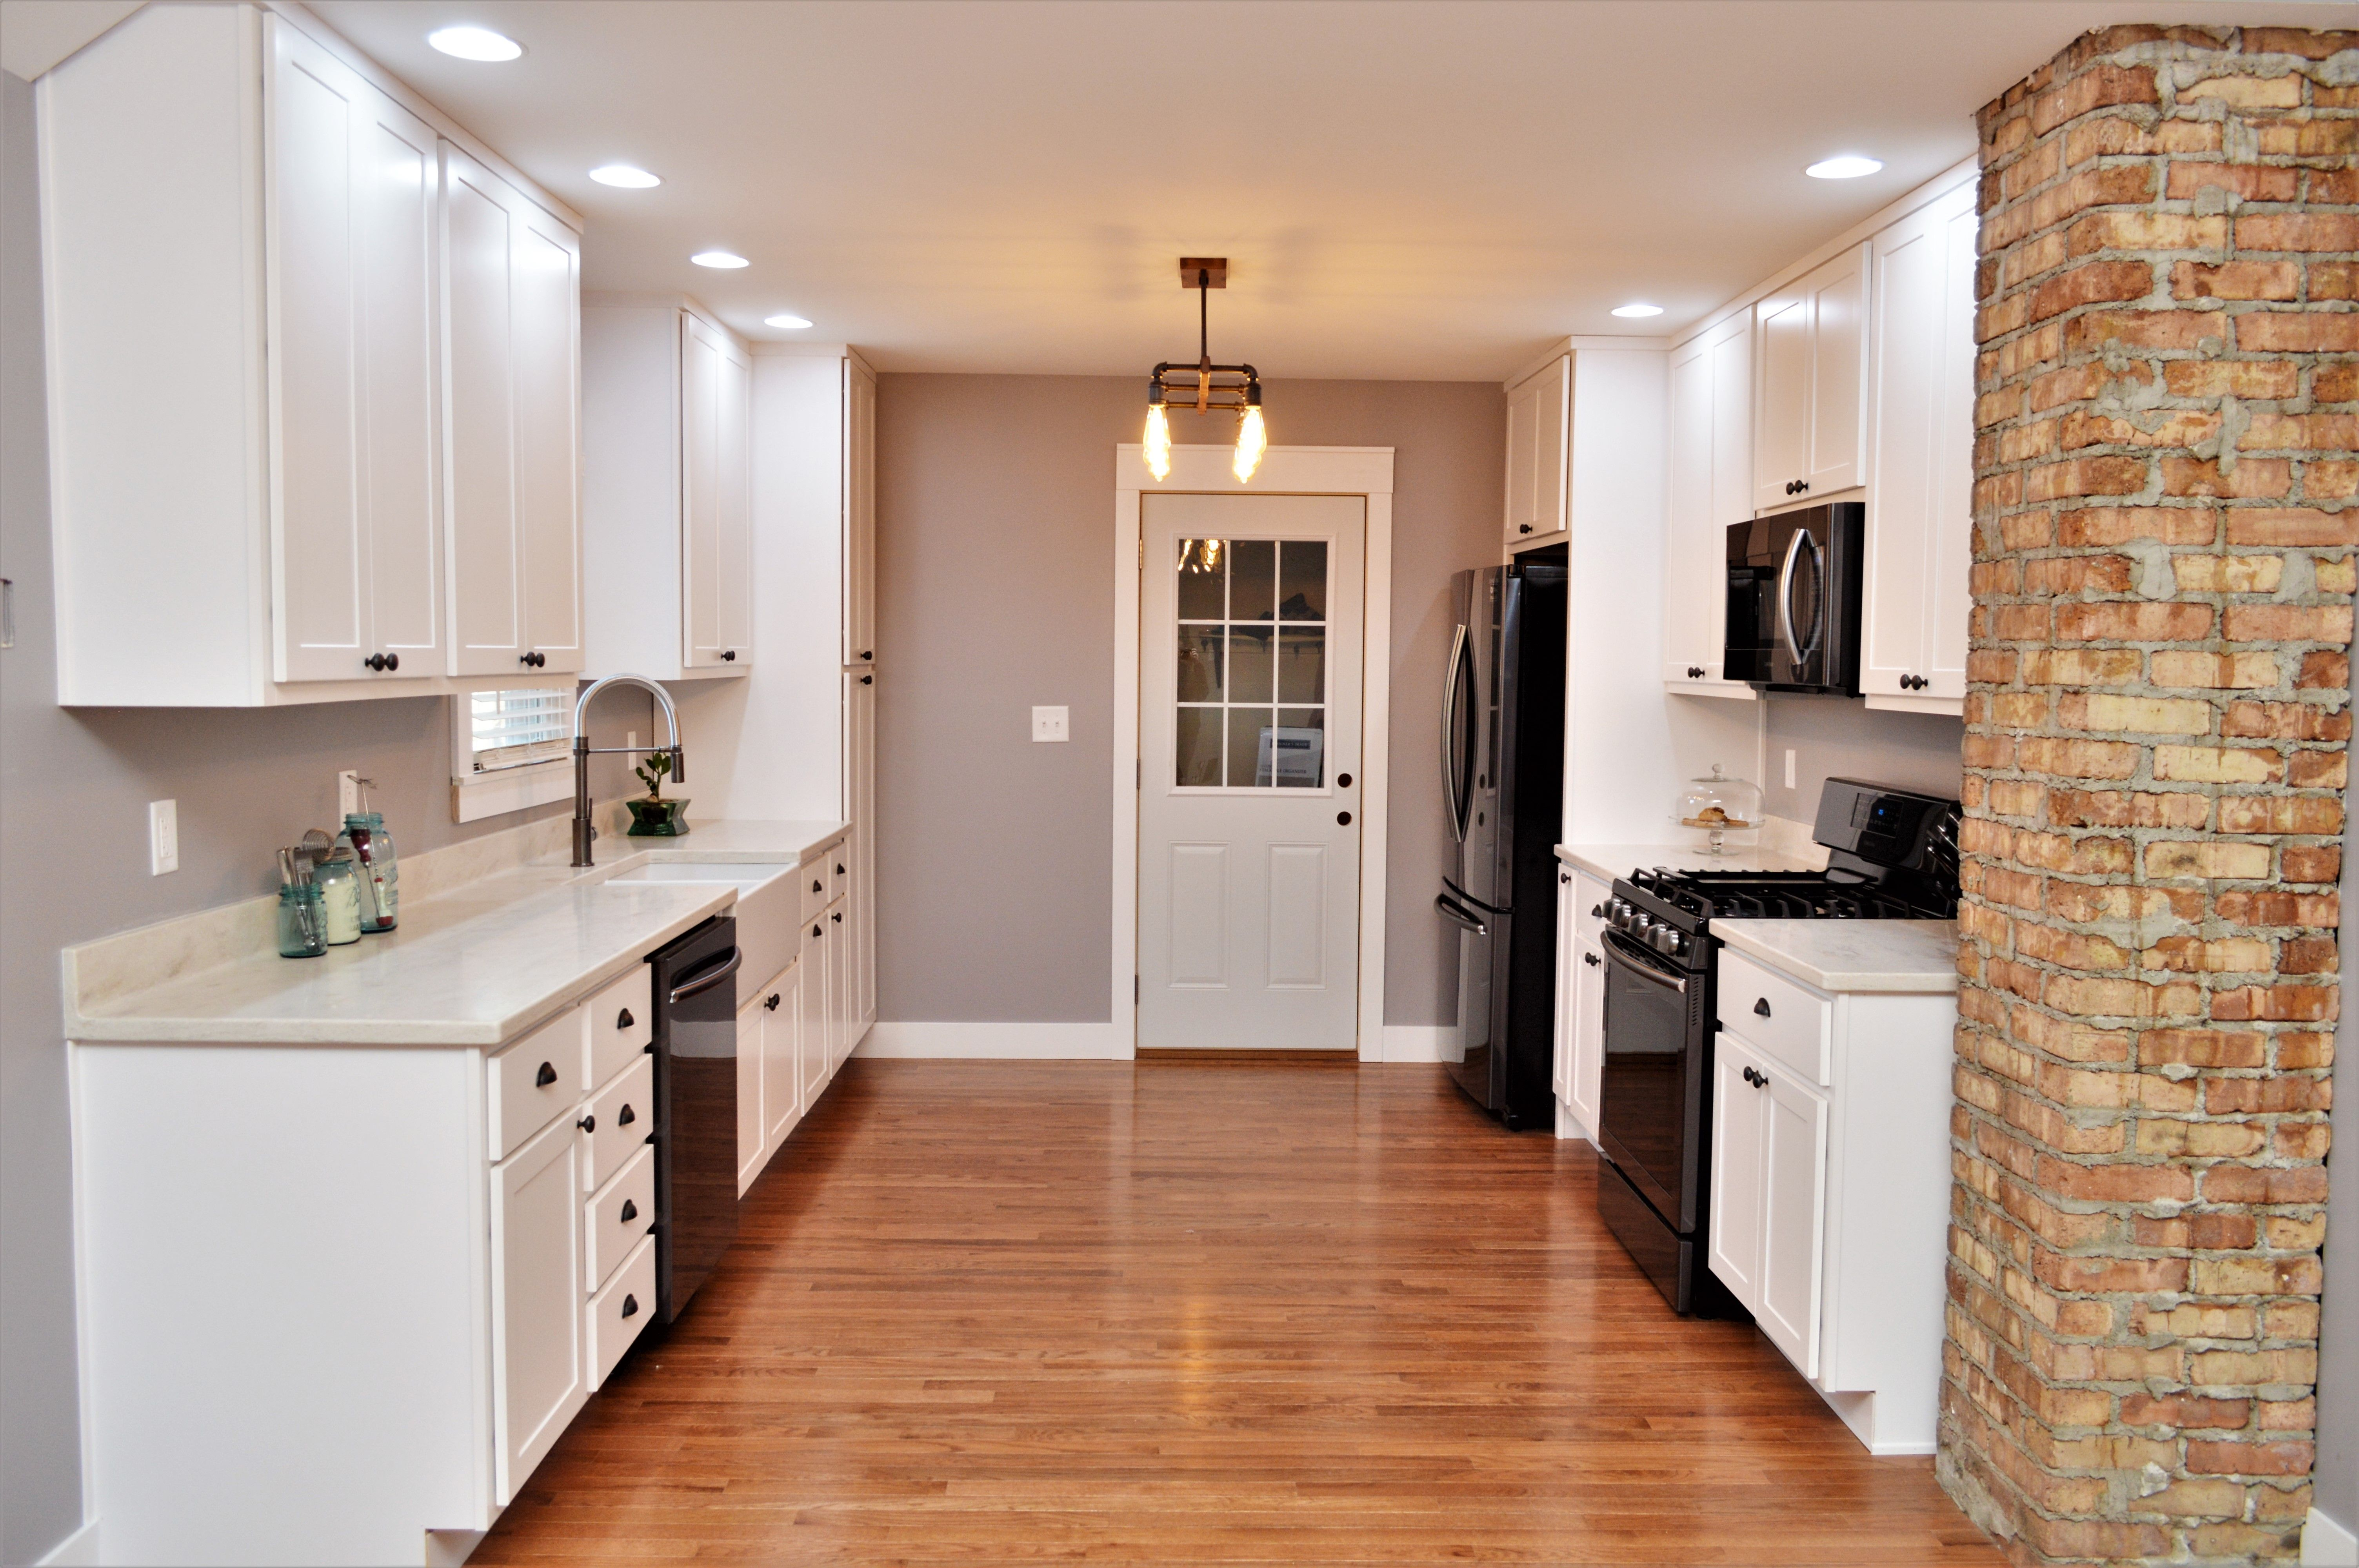 Cabinet Brand BaileyTown USA, Wood Species Maple, Cabinet Finish ...